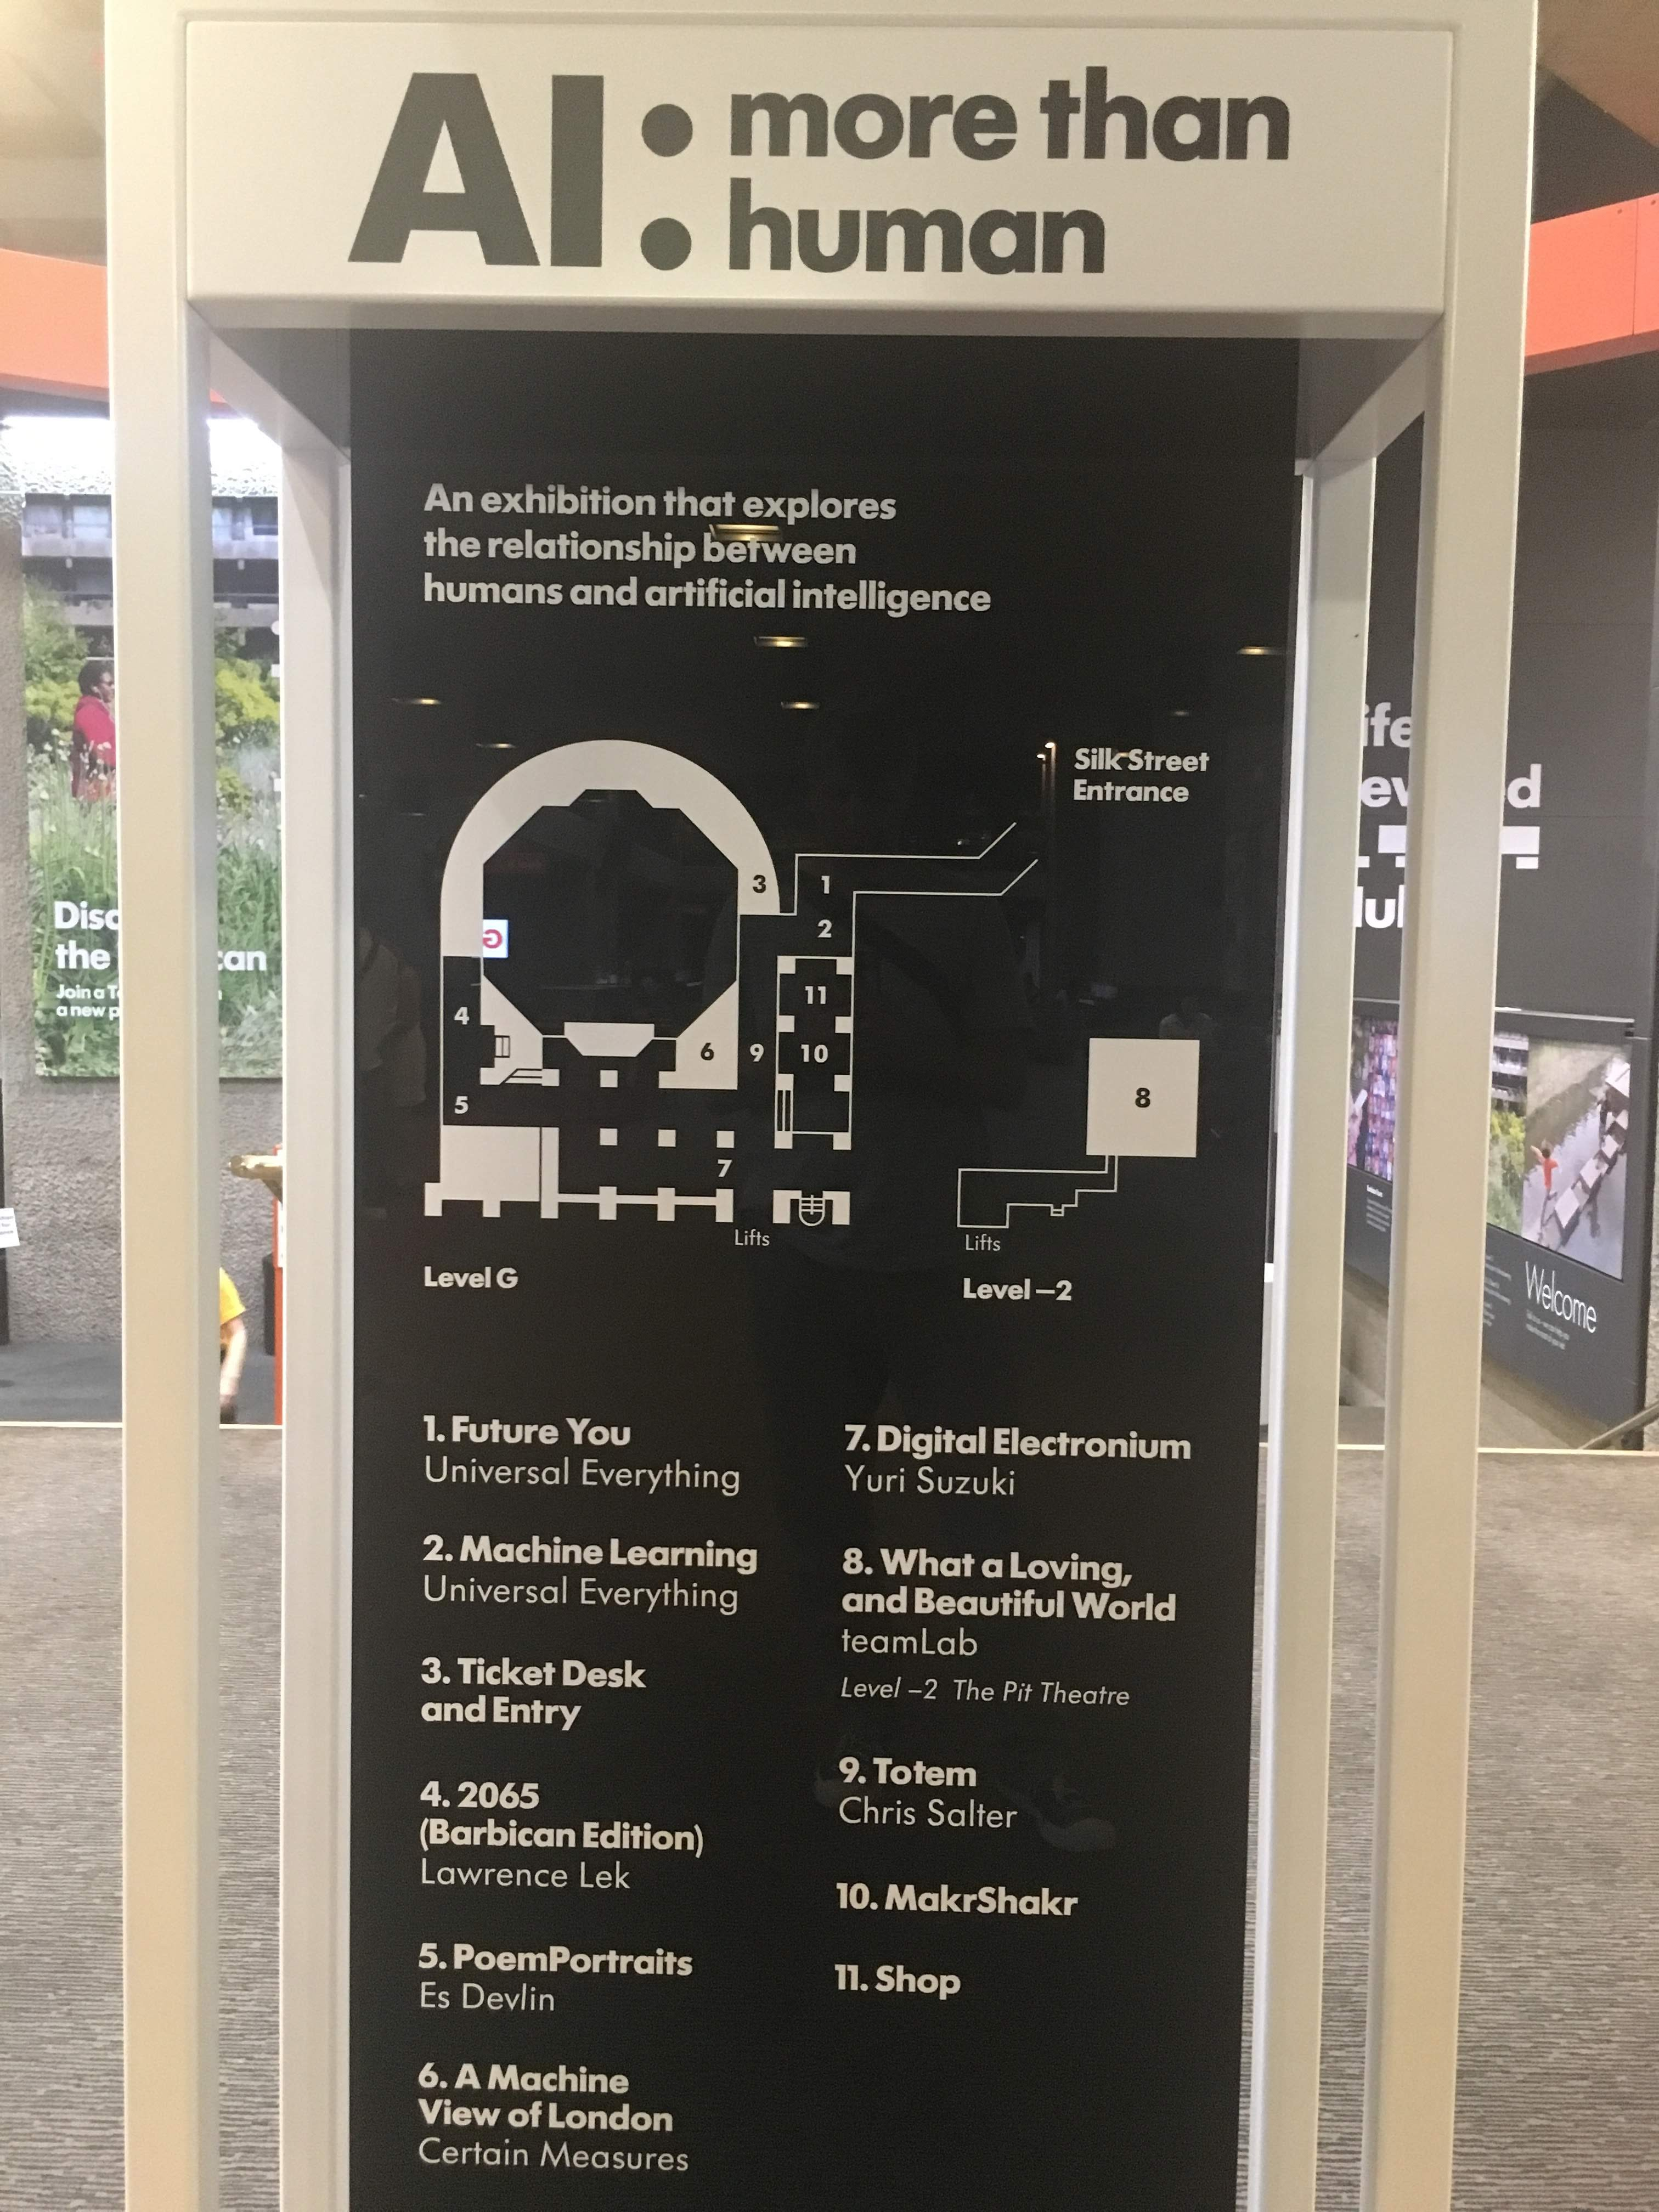 Wayfinding to AI: More than Human installations